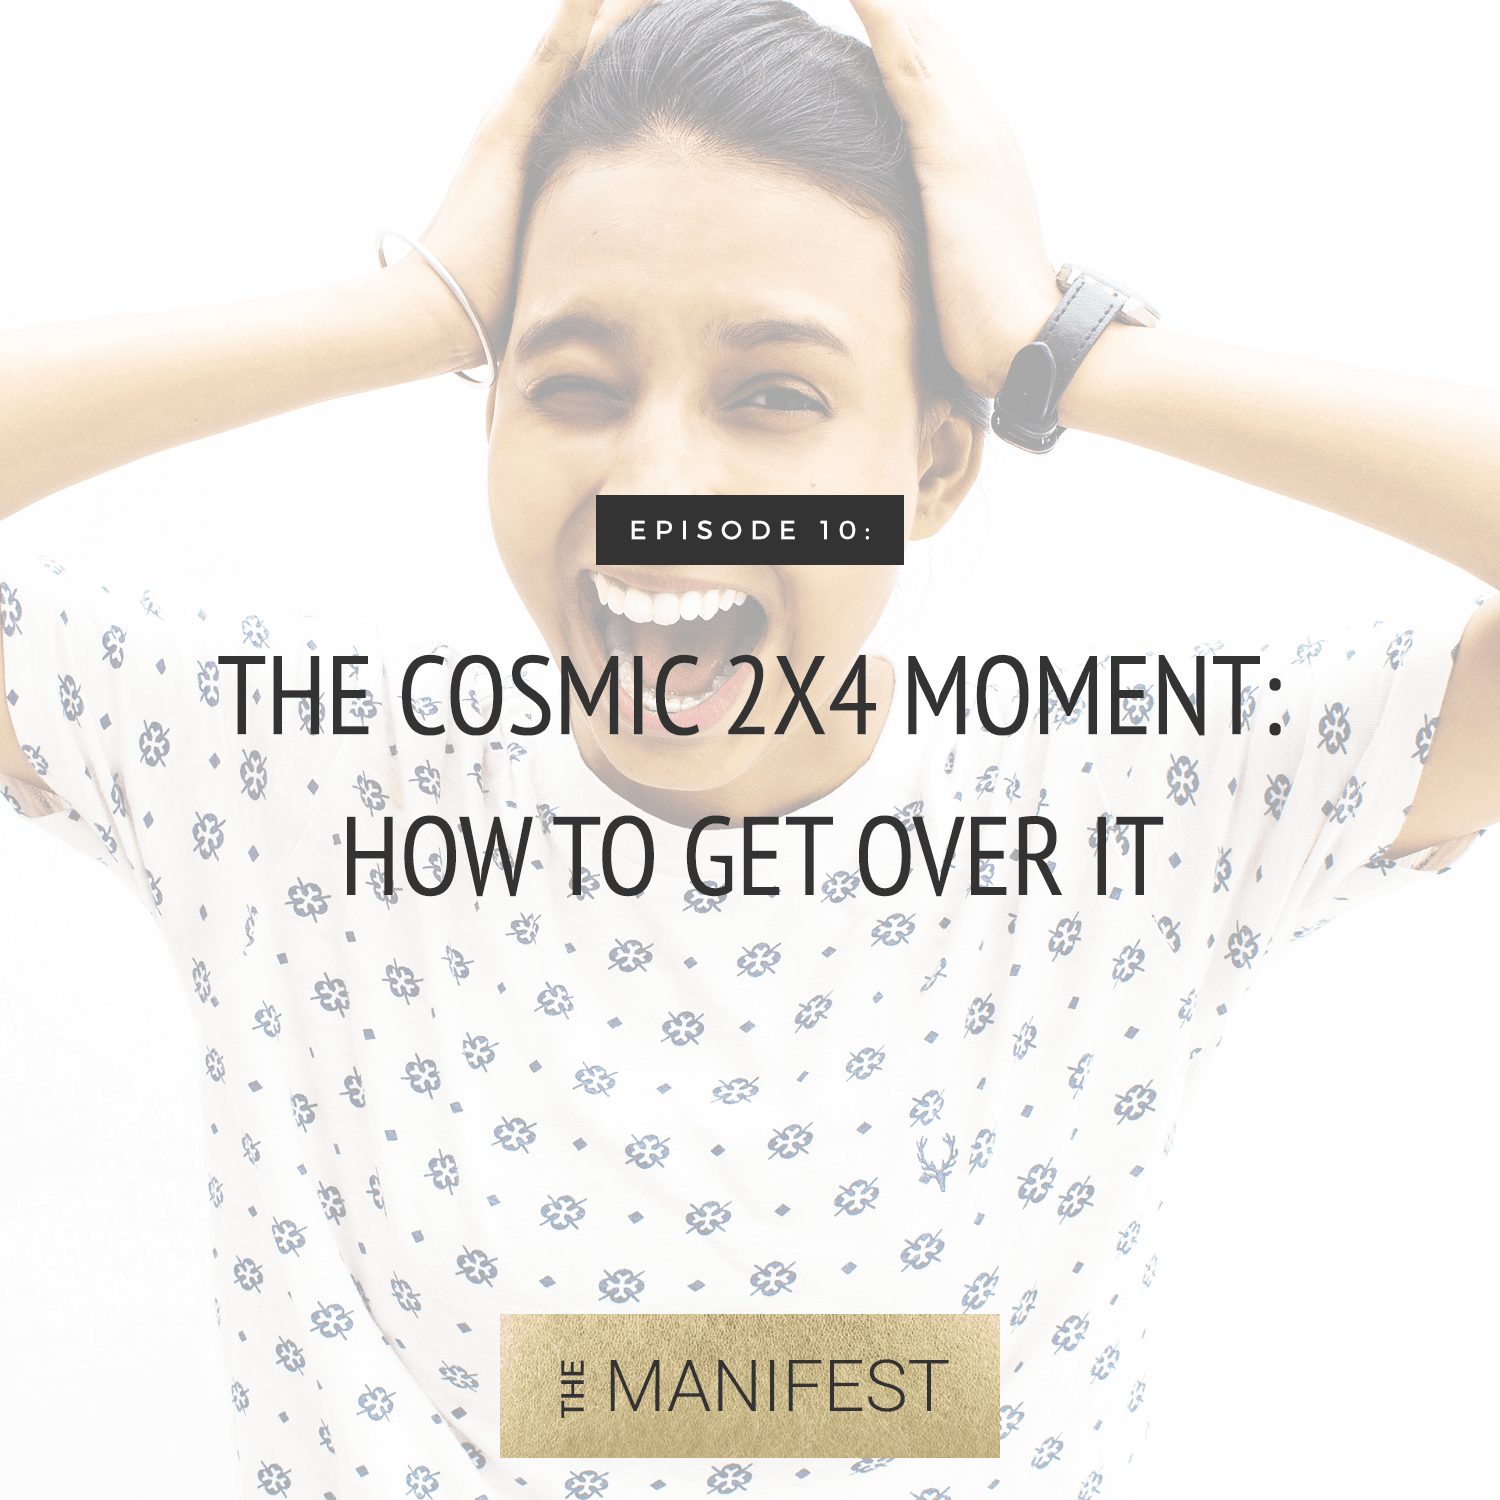 Episode #10: The Cosmic 2x4 Moment: How To Get Over It